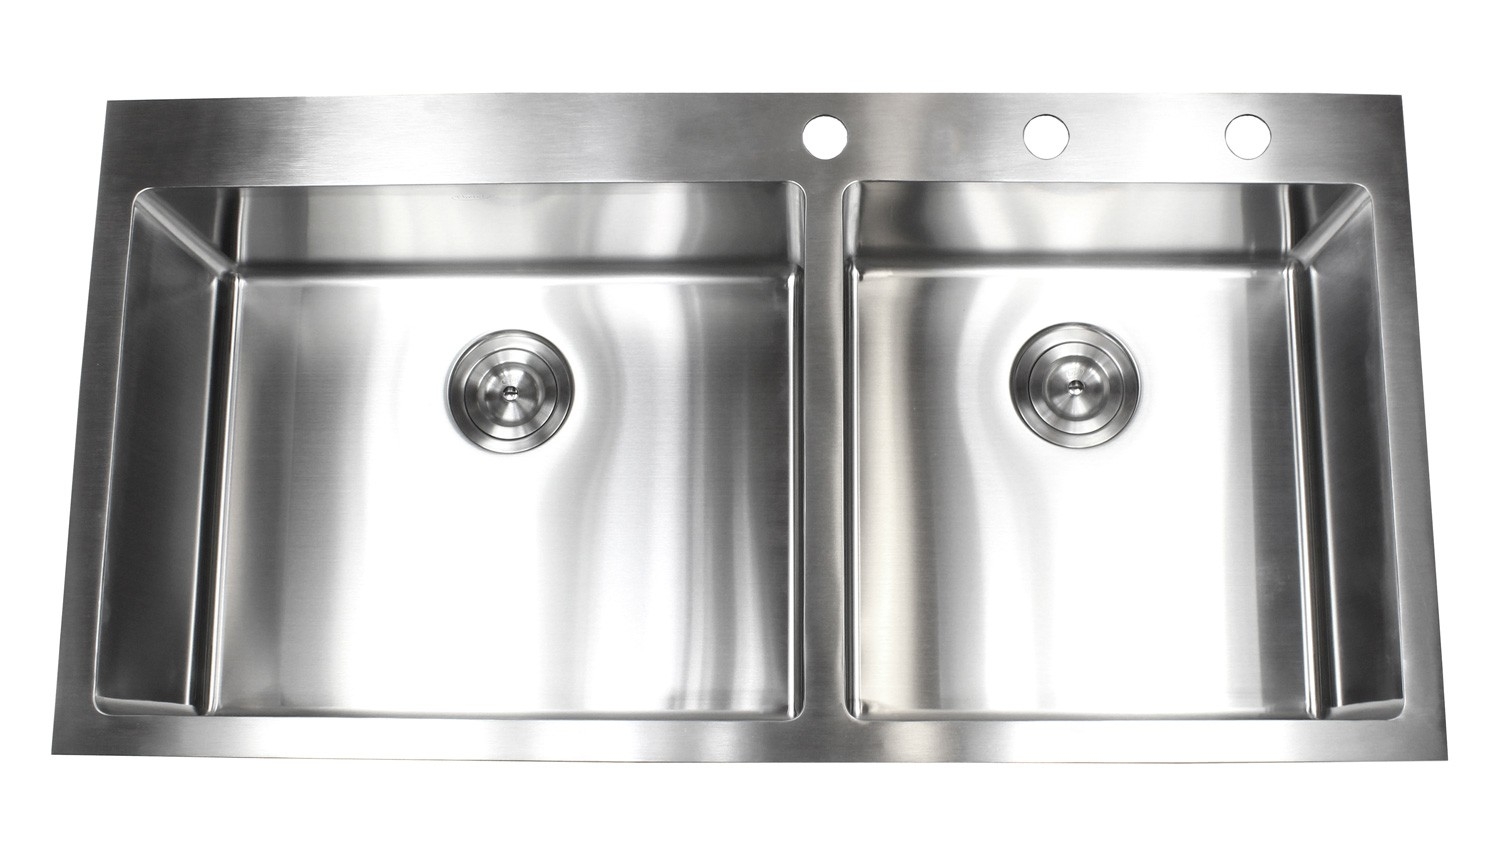 43 Inch Top-Mount / Drop-In Stainless Steel Double Bowl Kitchen Sink ...